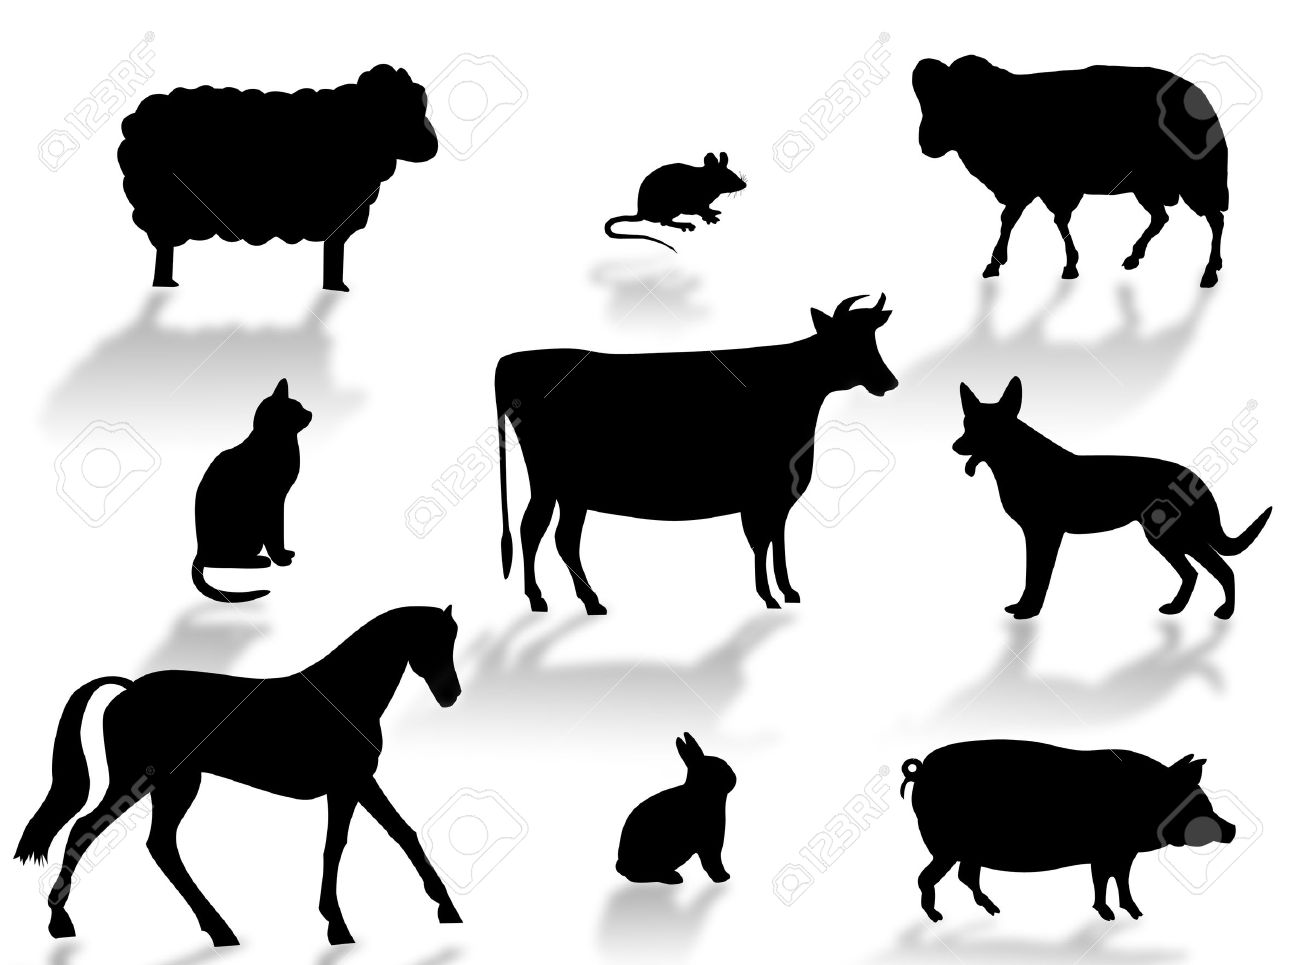 http://previews.123rf.com/images/guilu67/guilu670709/guilu67070900002/1584793-Farm-animals-silhouettes-with-shadows-on-a-white-background-Stock-Photo.jpg